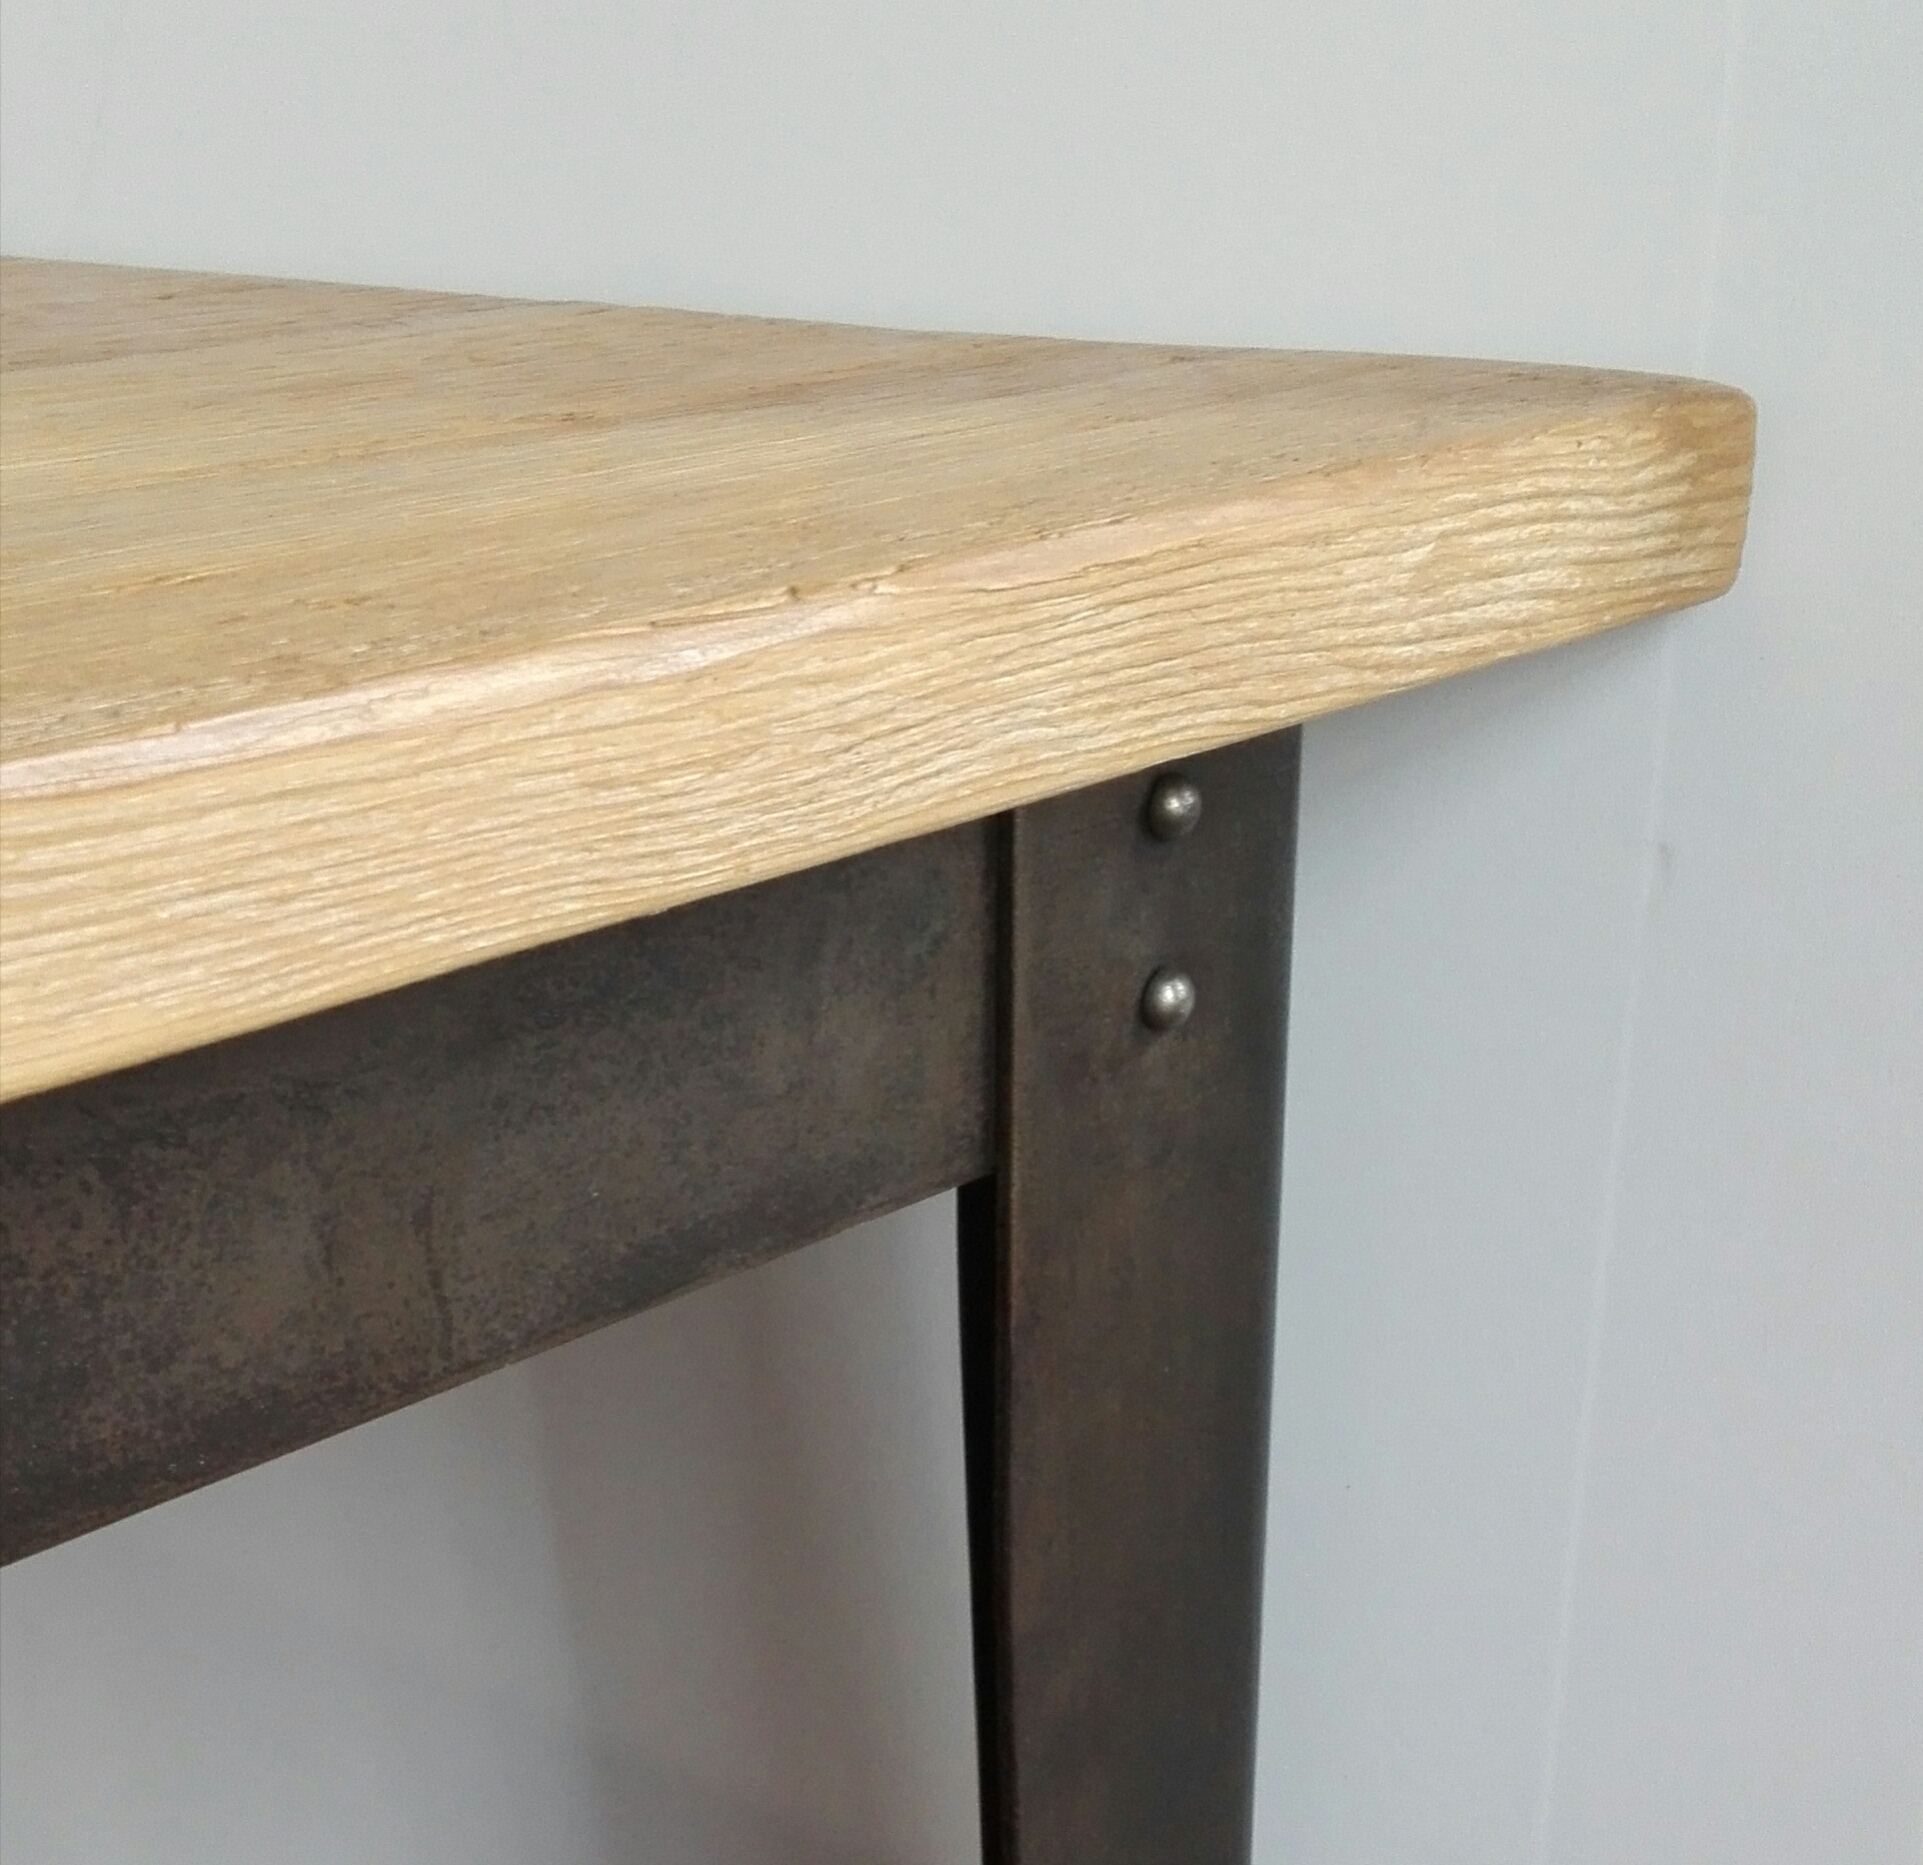 Table made from reclaimed 19th century Oregon and metal base